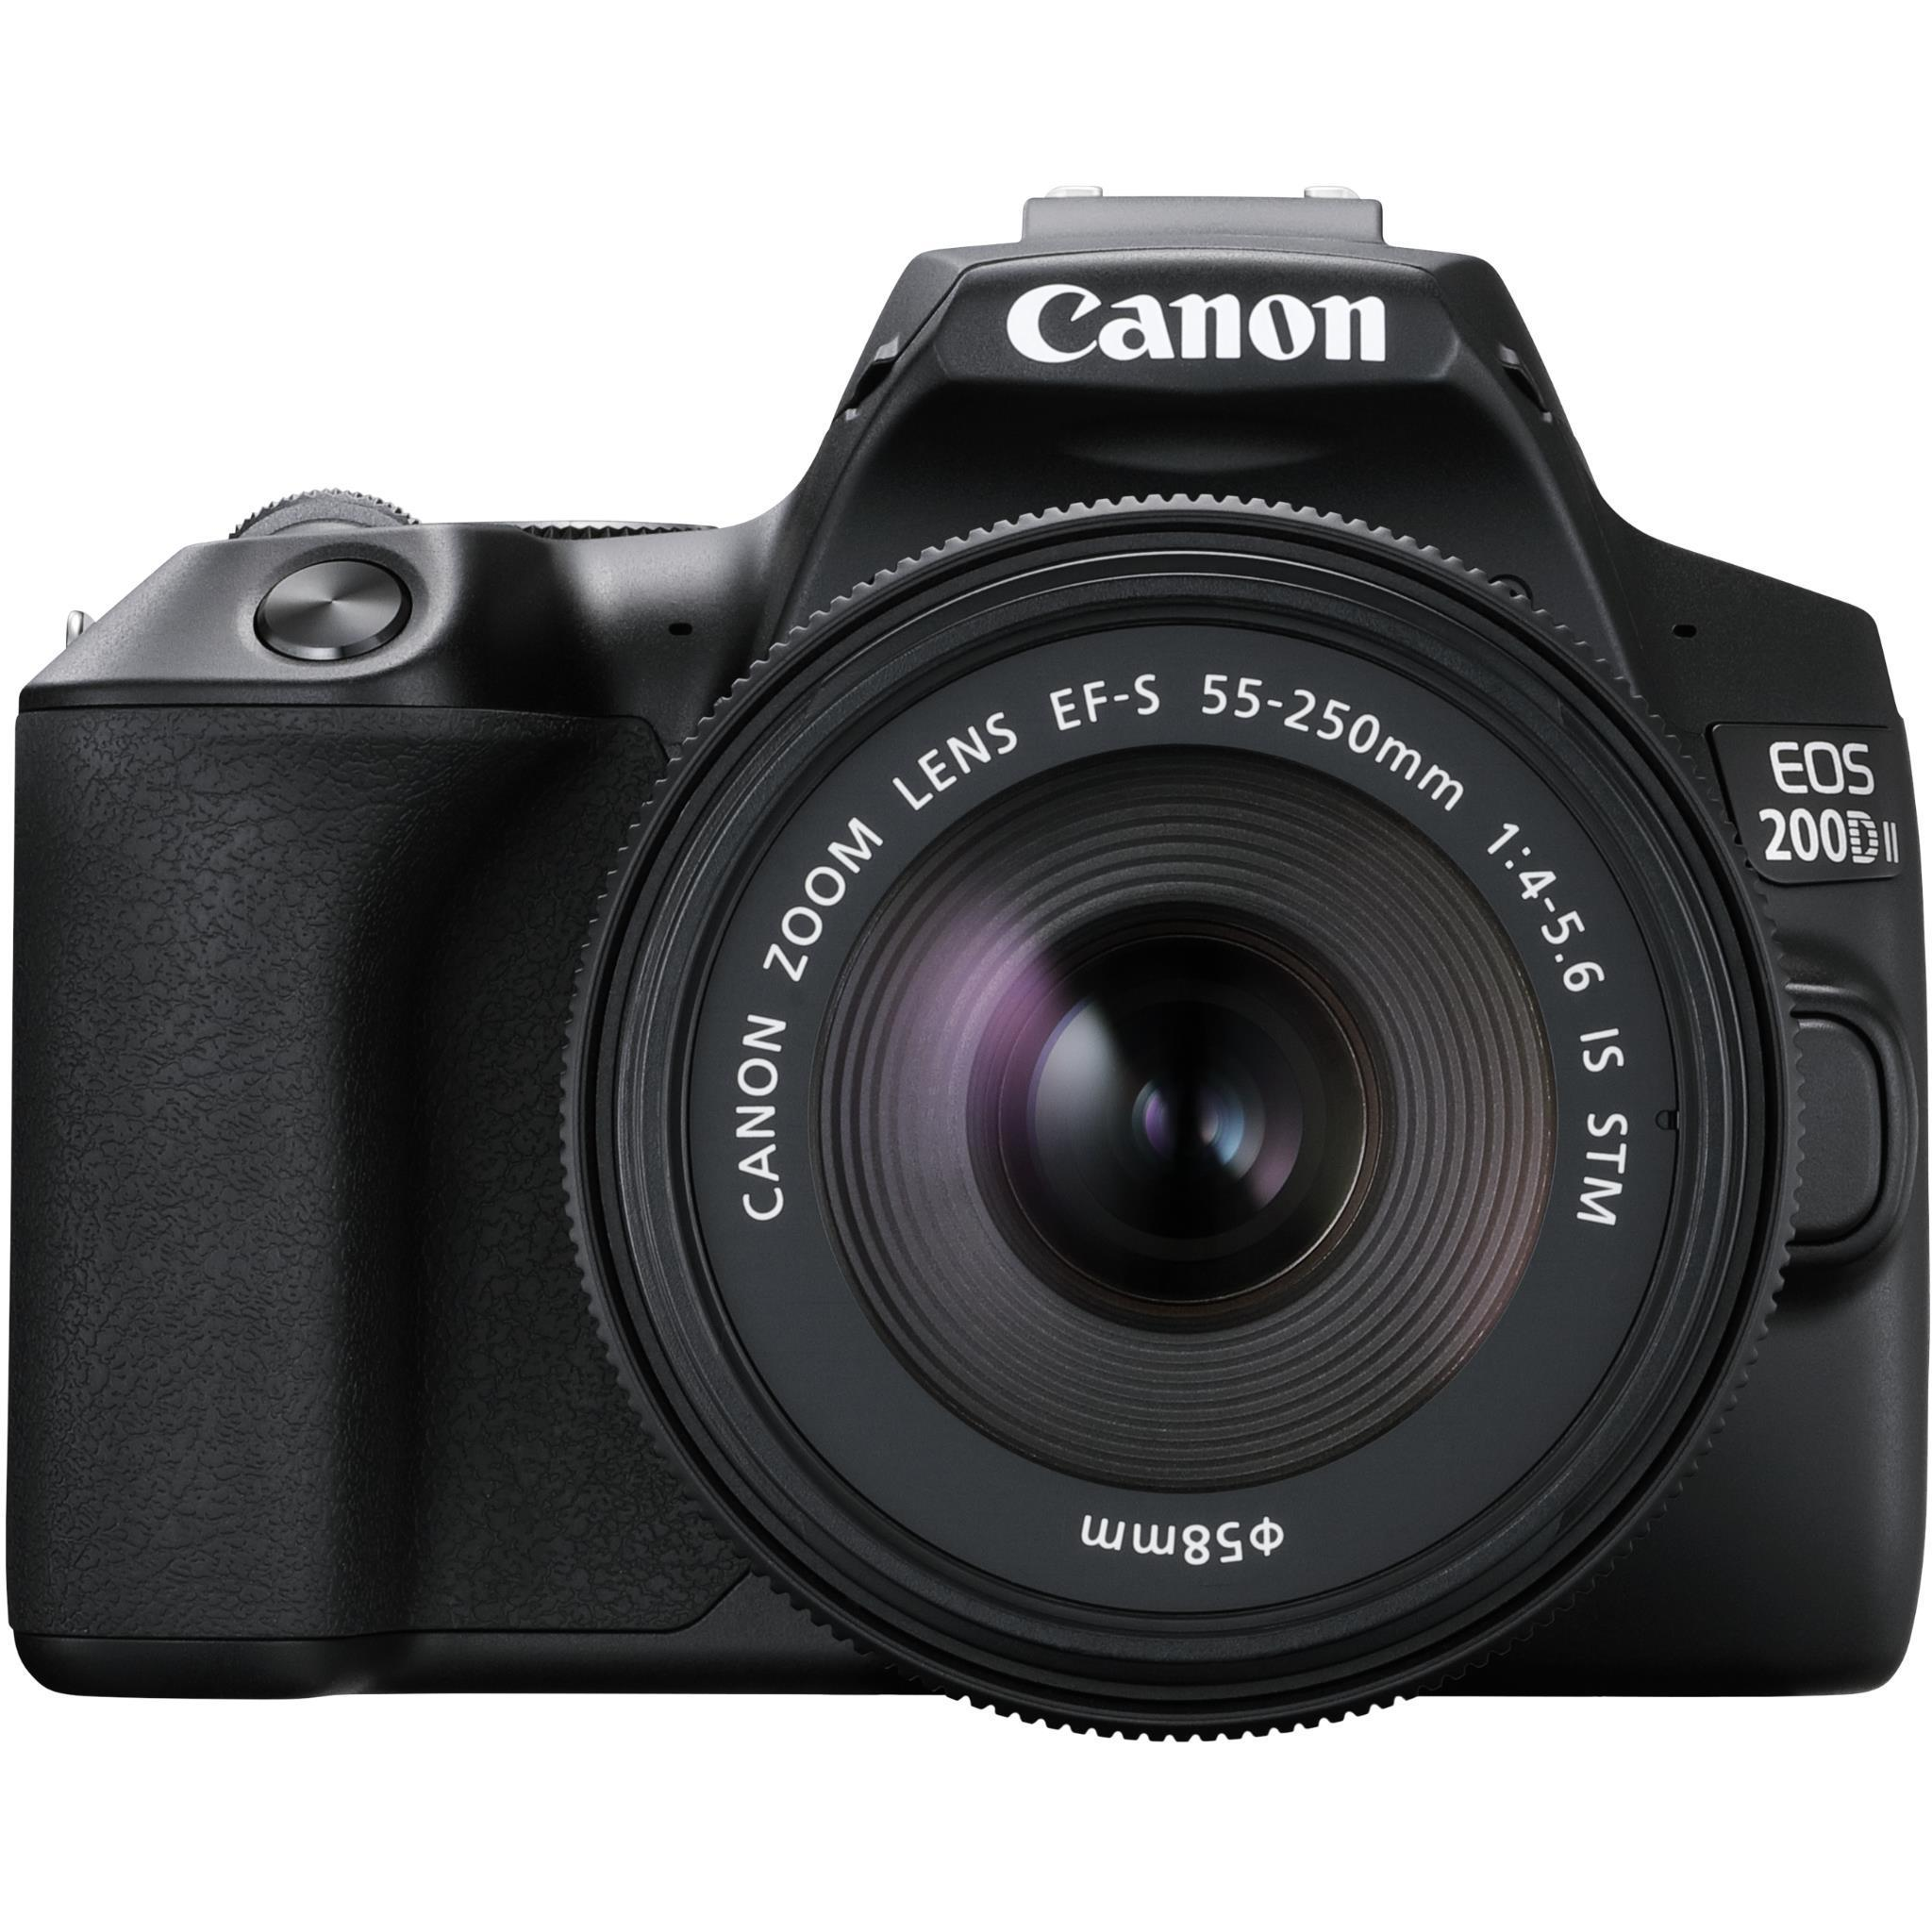 Canon EOS 200D II DSLR Twin Kit with 18-55mm & 55-250mm Lenses [4K Video]